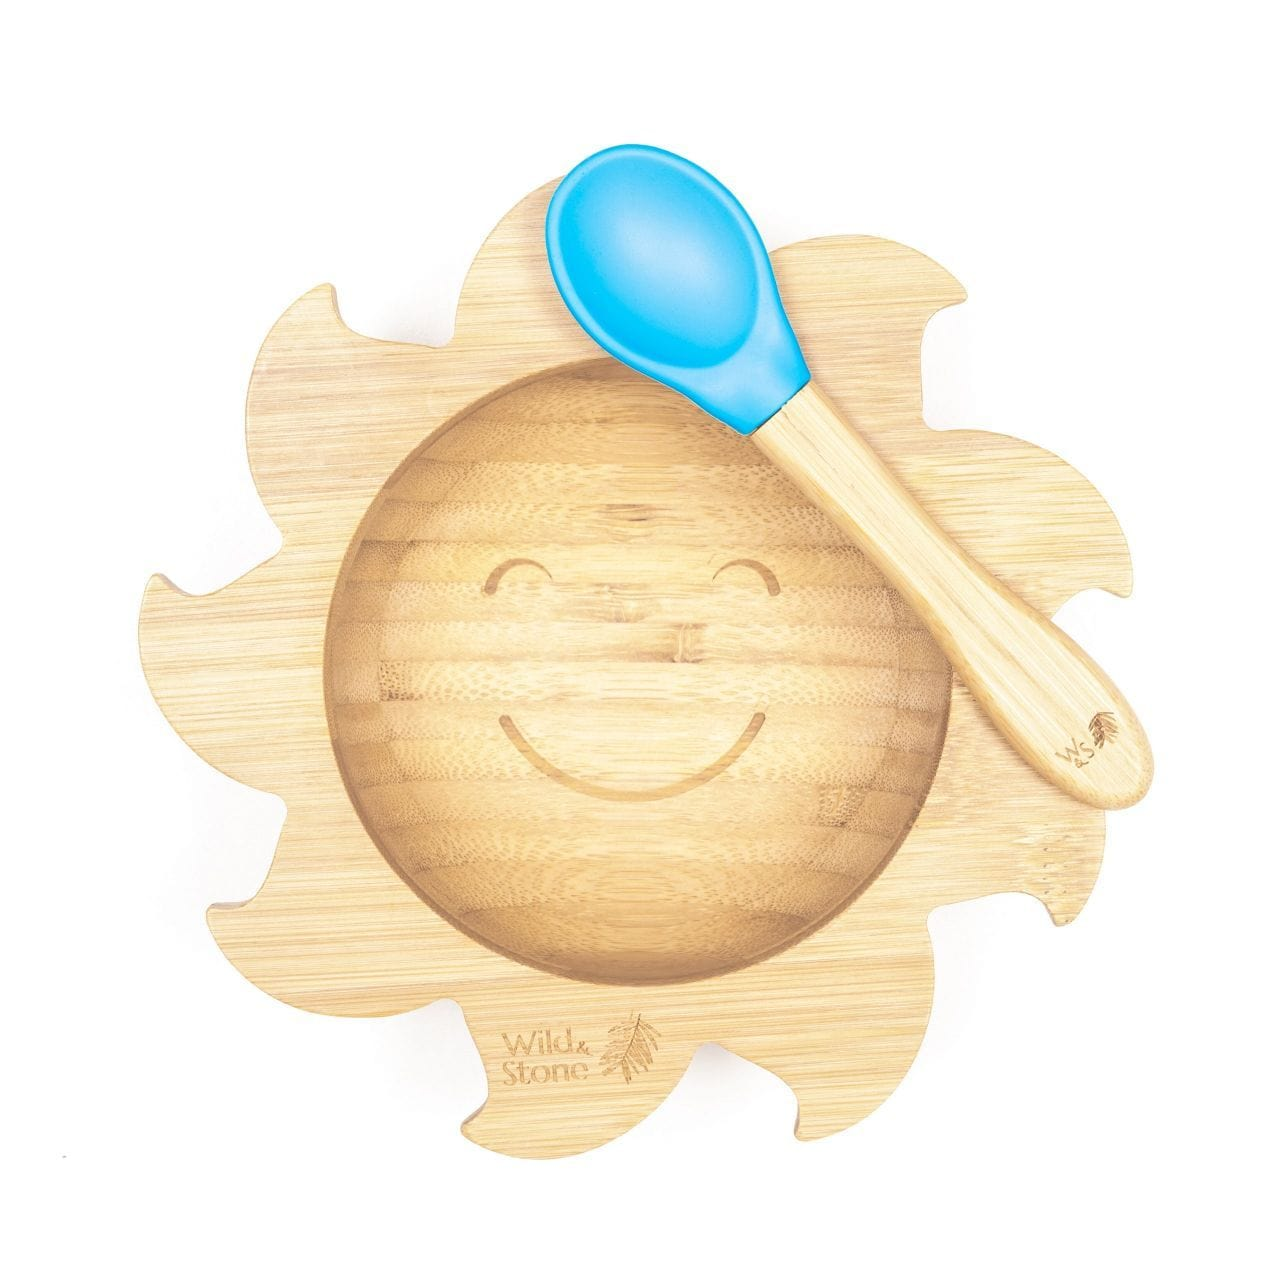 Wild & Stone - Baby Bamboo Bowl and Spoon Set, You are my Sunshine, Blue